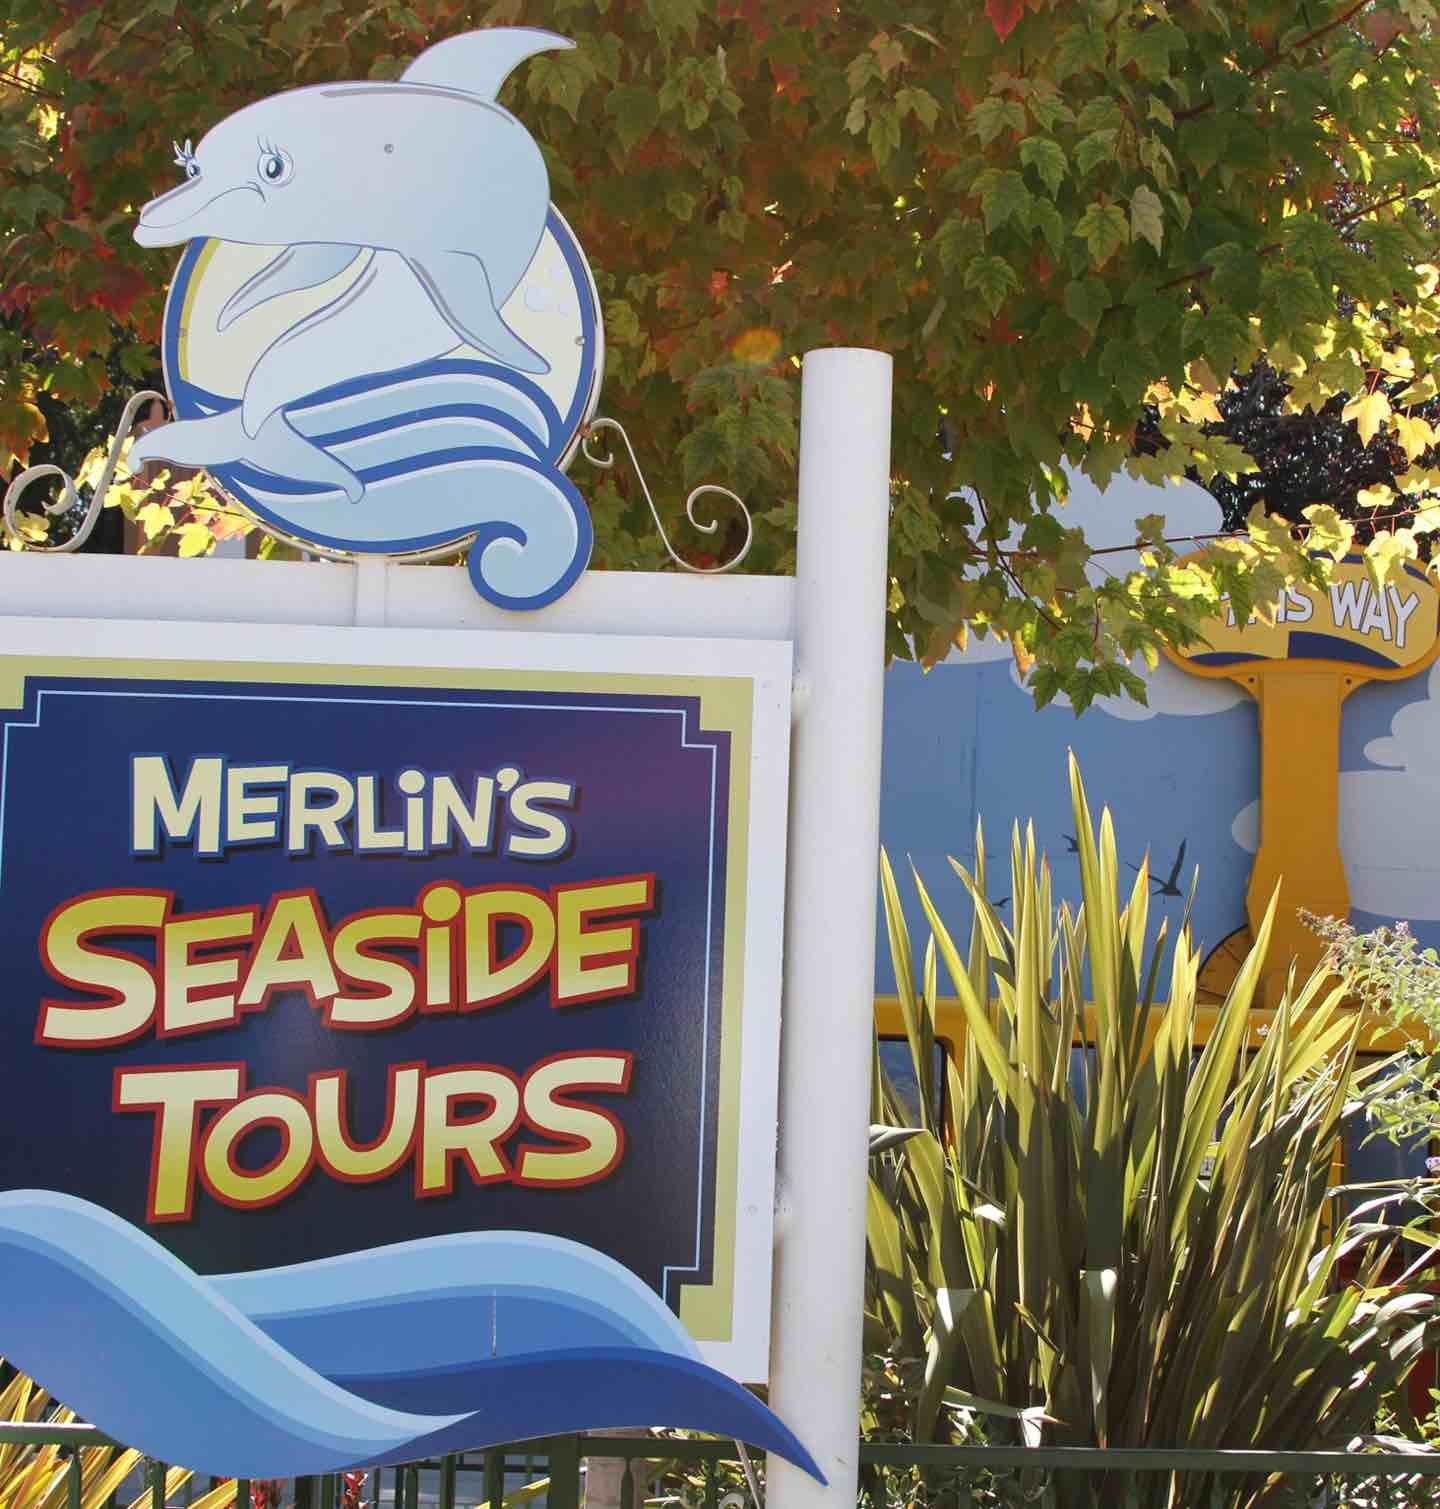 A sign for Merlin's Seaside Tours.